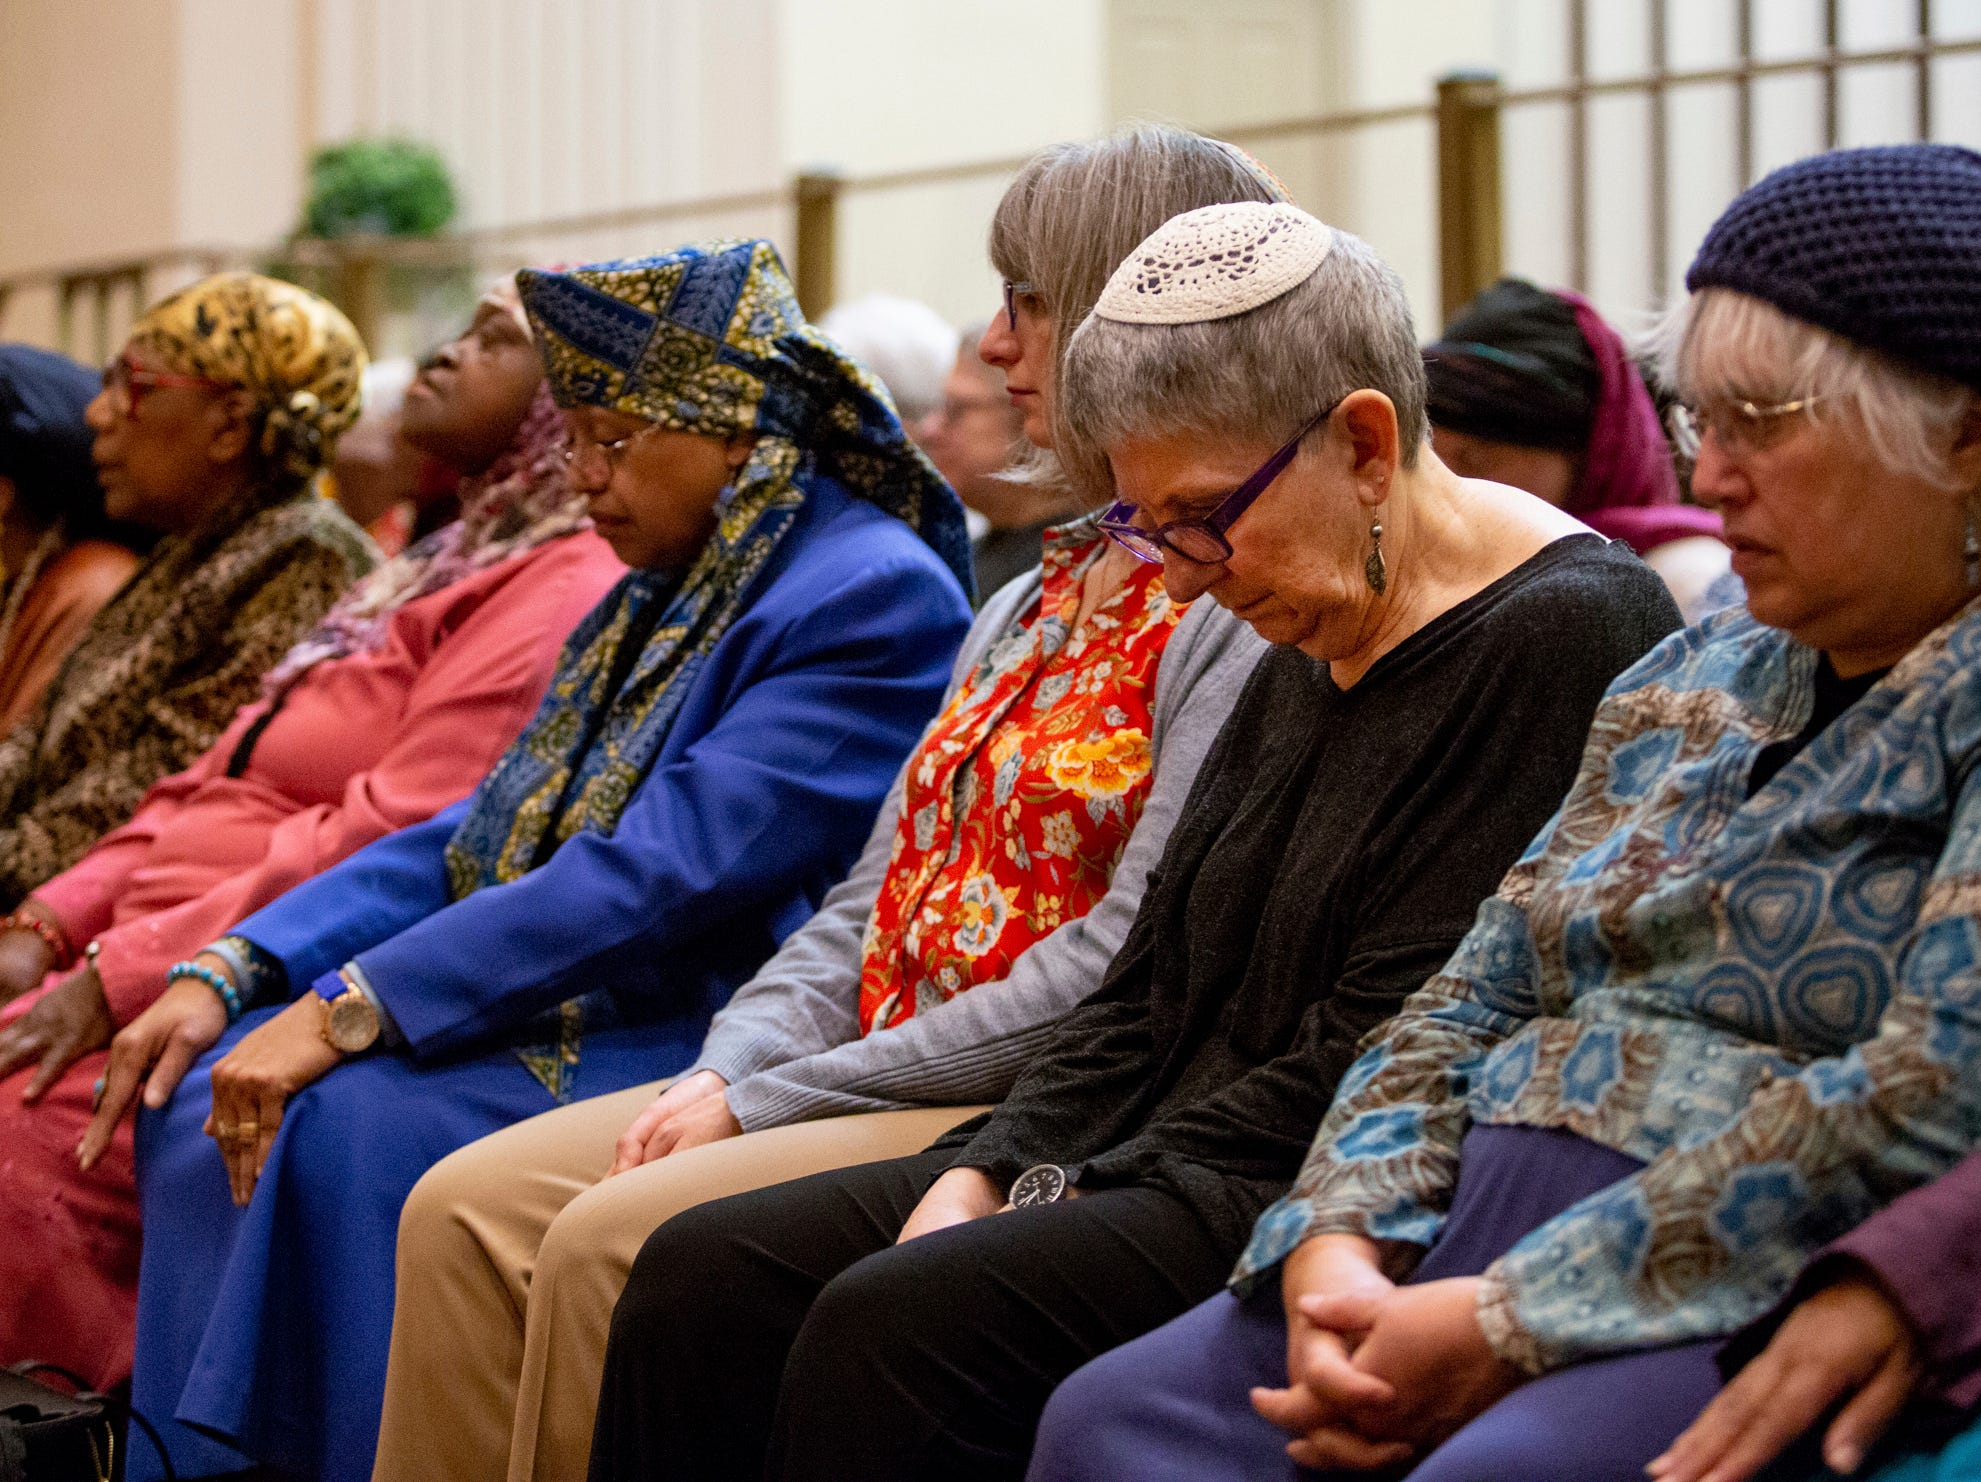 Rabbi Linda Holtzman, second from right, attends an interfaith service held in honor and solidarity with the people killed in the deadly attacks on mosques in New Zealand at an Masjidullah Mosque in Philadelphia, Friday, March 15, 2019.